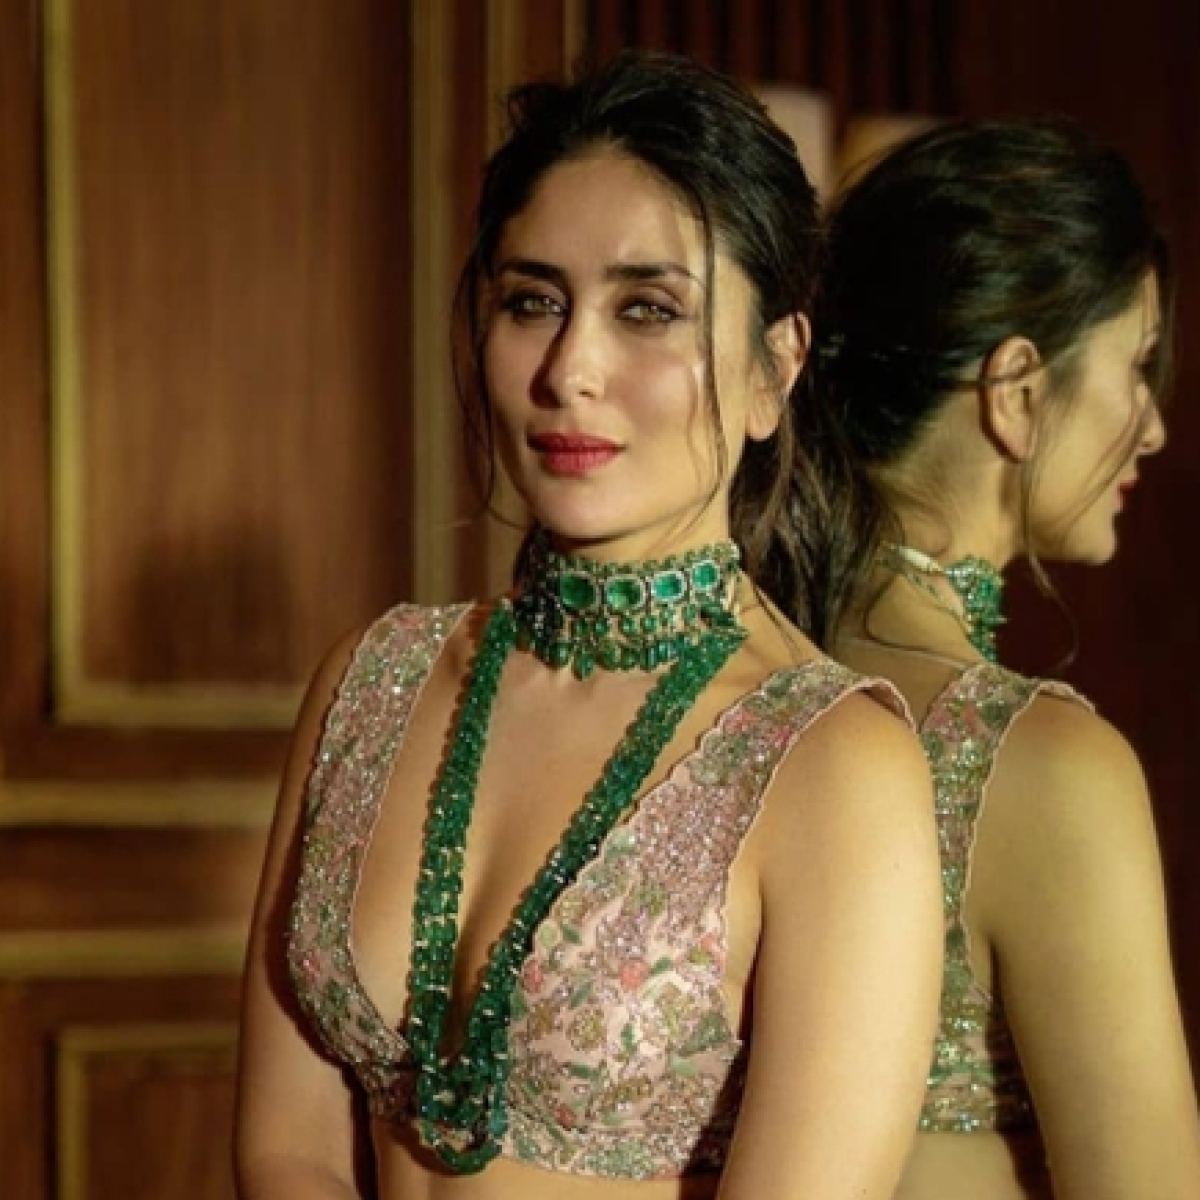 Kareena Kapoor looks quintessentially royal in this bridal photoshoot